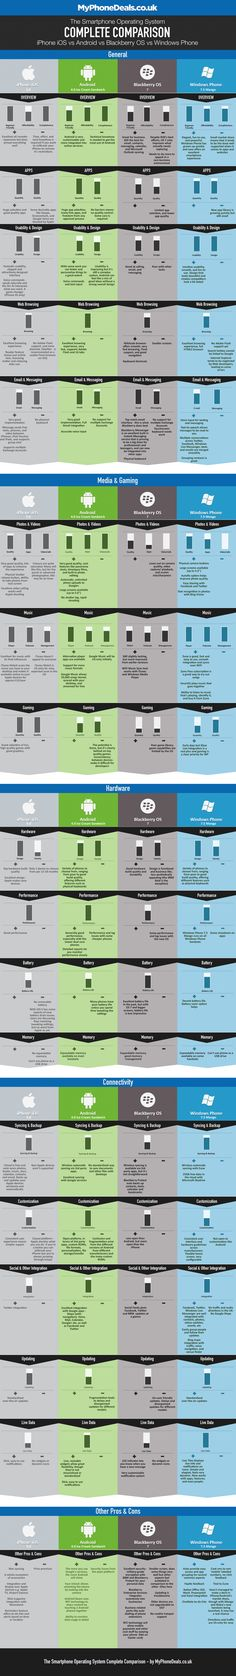 Smartphones Mobile OS comparision Apple Android Blackberry Windows Phone Infographic